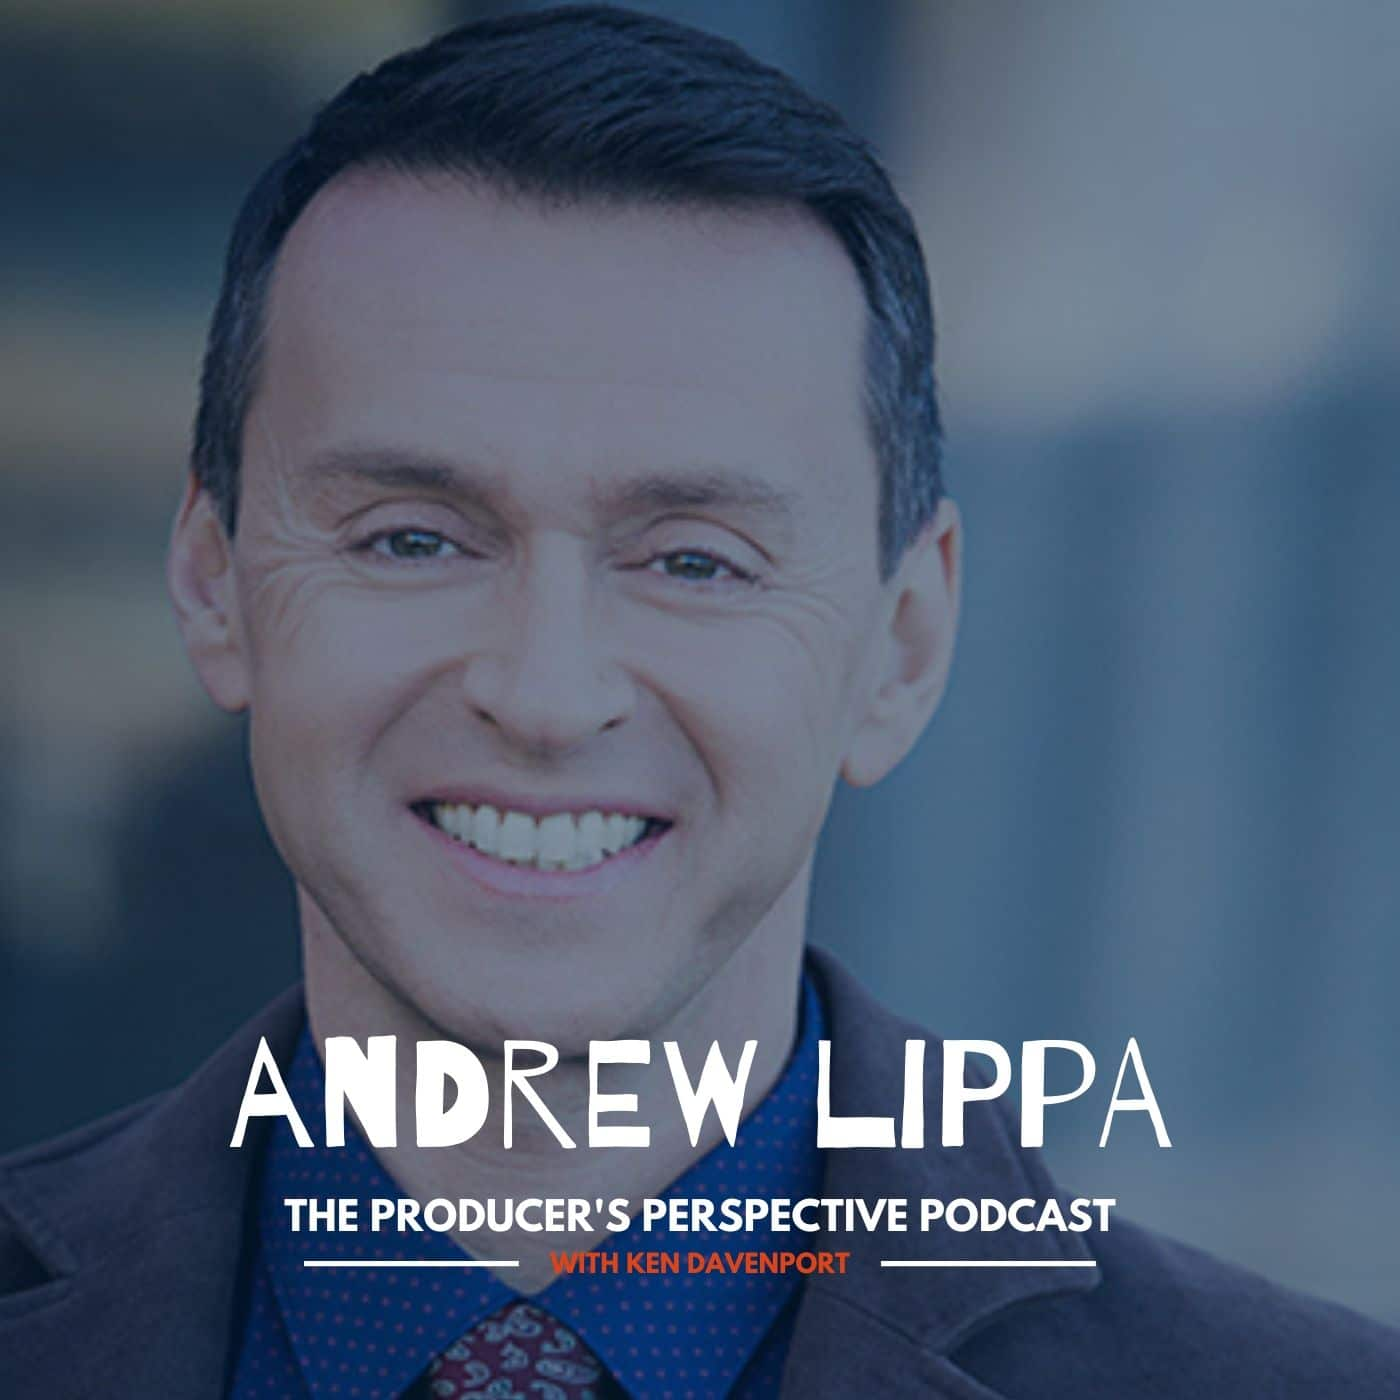 Ken Davenport's The Producer's Perspective Podcast Episode 96 - Andrew Lippa